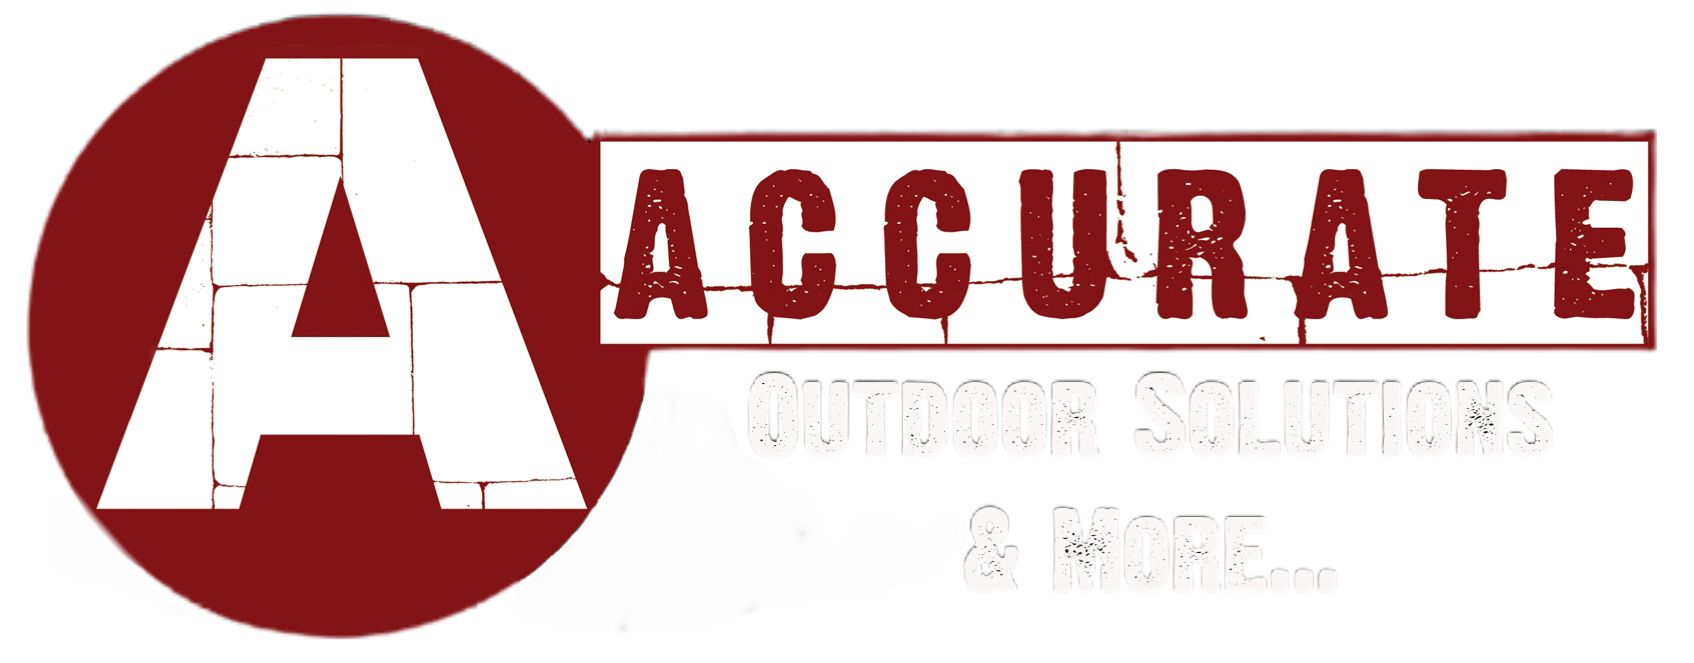 Accurate Outdoor Solutions | Naples, Fort Myers, Bonita Springs, Cape Coral, Marco Island, Estero, Ave Marie